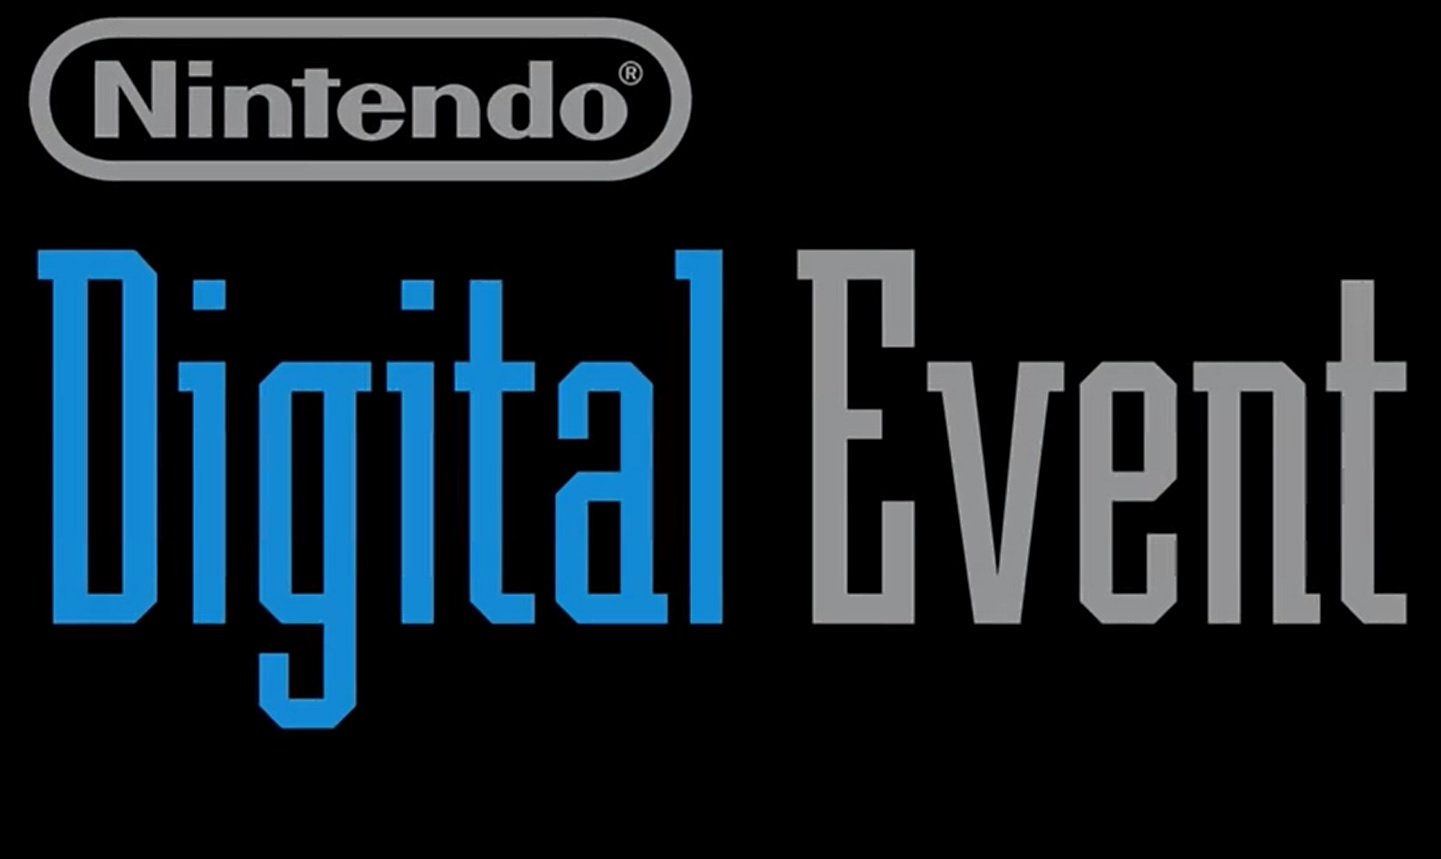 Nintendo Digital Event